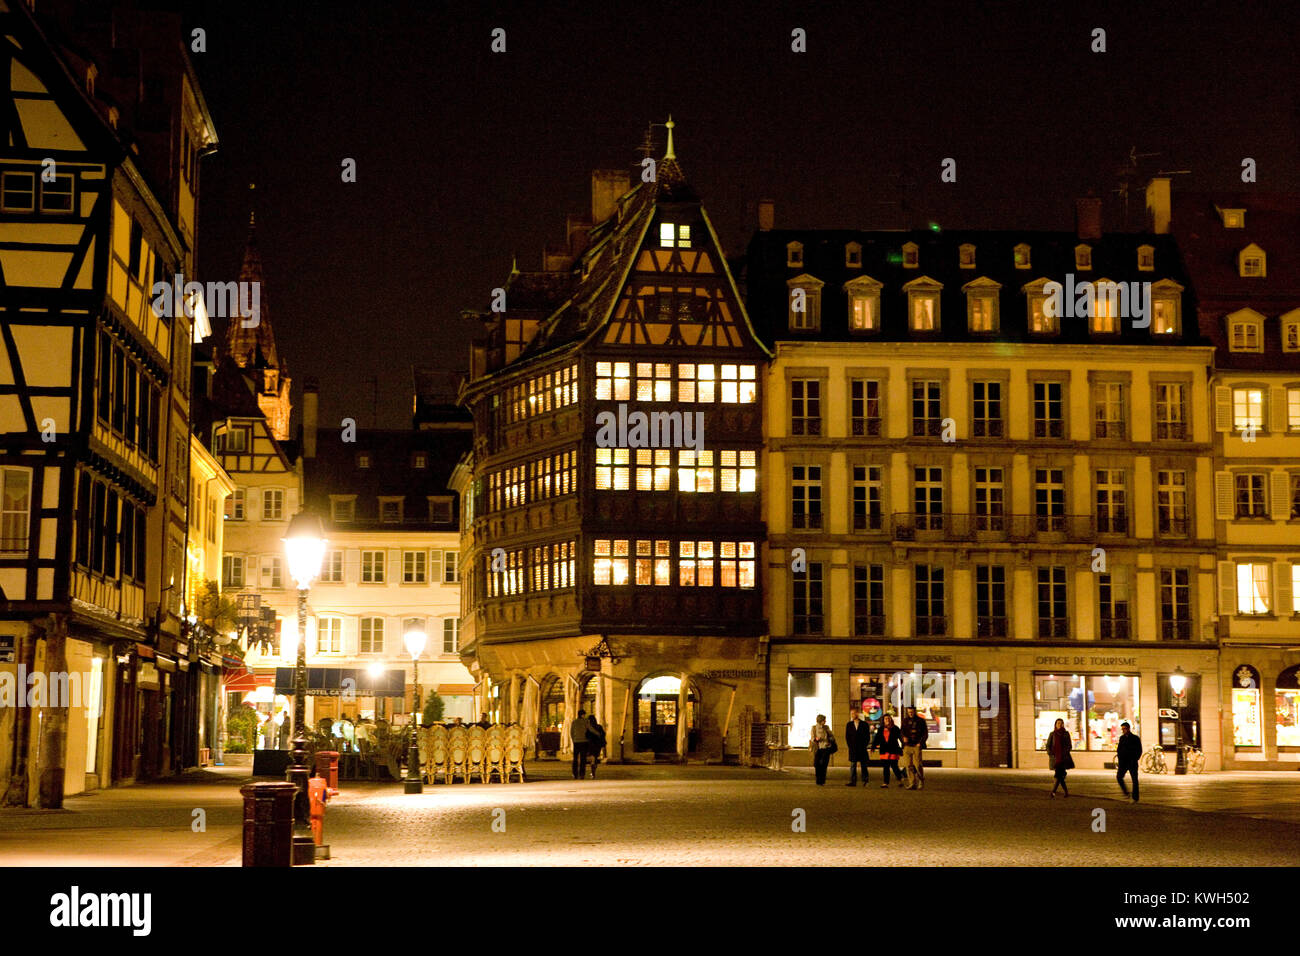 Europe/France/Alsace/Bas-Rhin/Strasbourg. La Maison Kammerzell. Extérieur nuit//Outside view at night - Stock Image